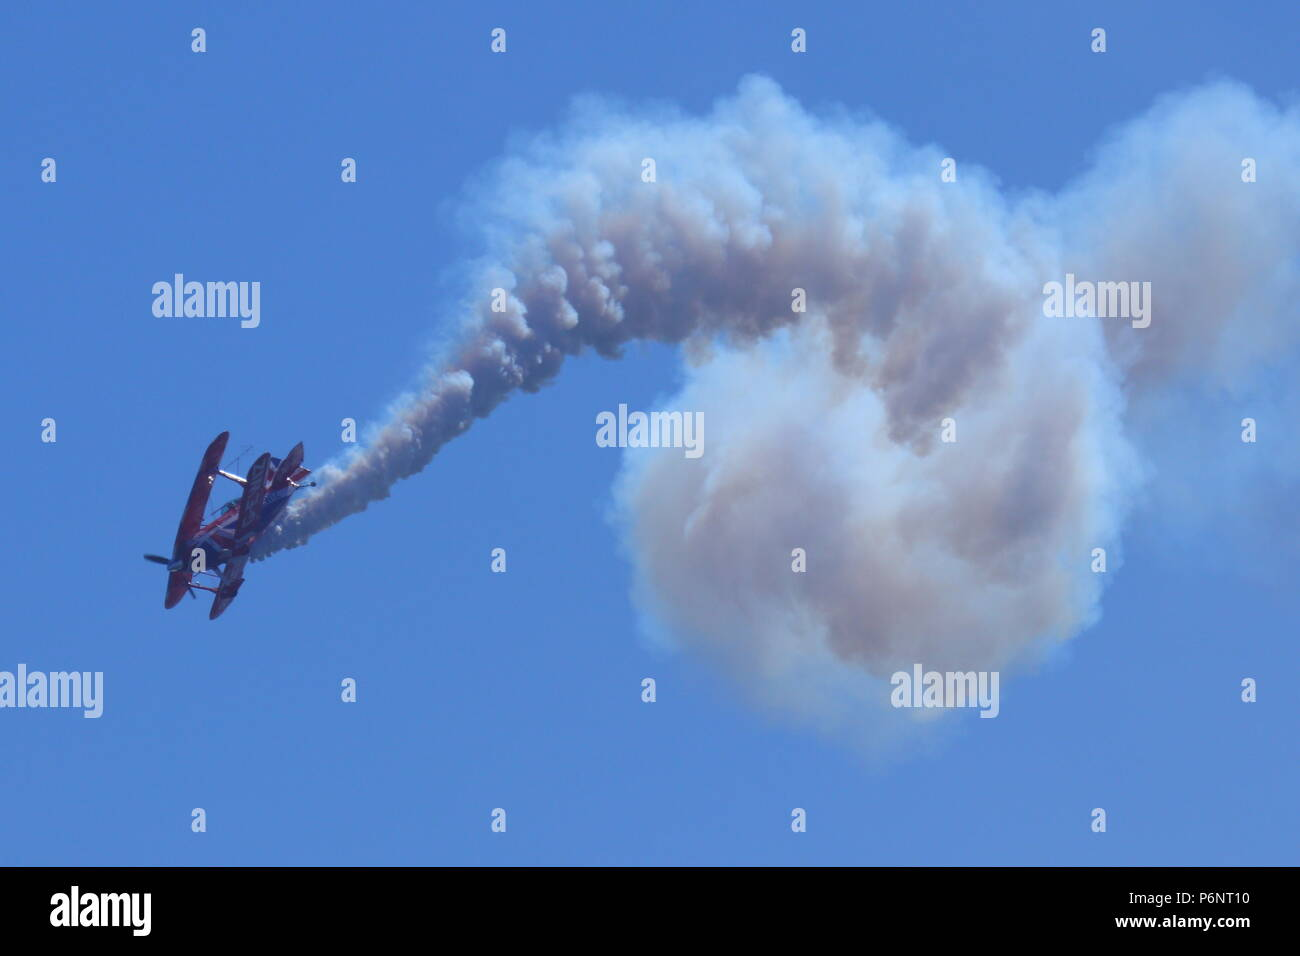 Rich Goodwin's Bi-plane performing acrobatic displays at Scarborough Armed Forces Day. - Stock Image